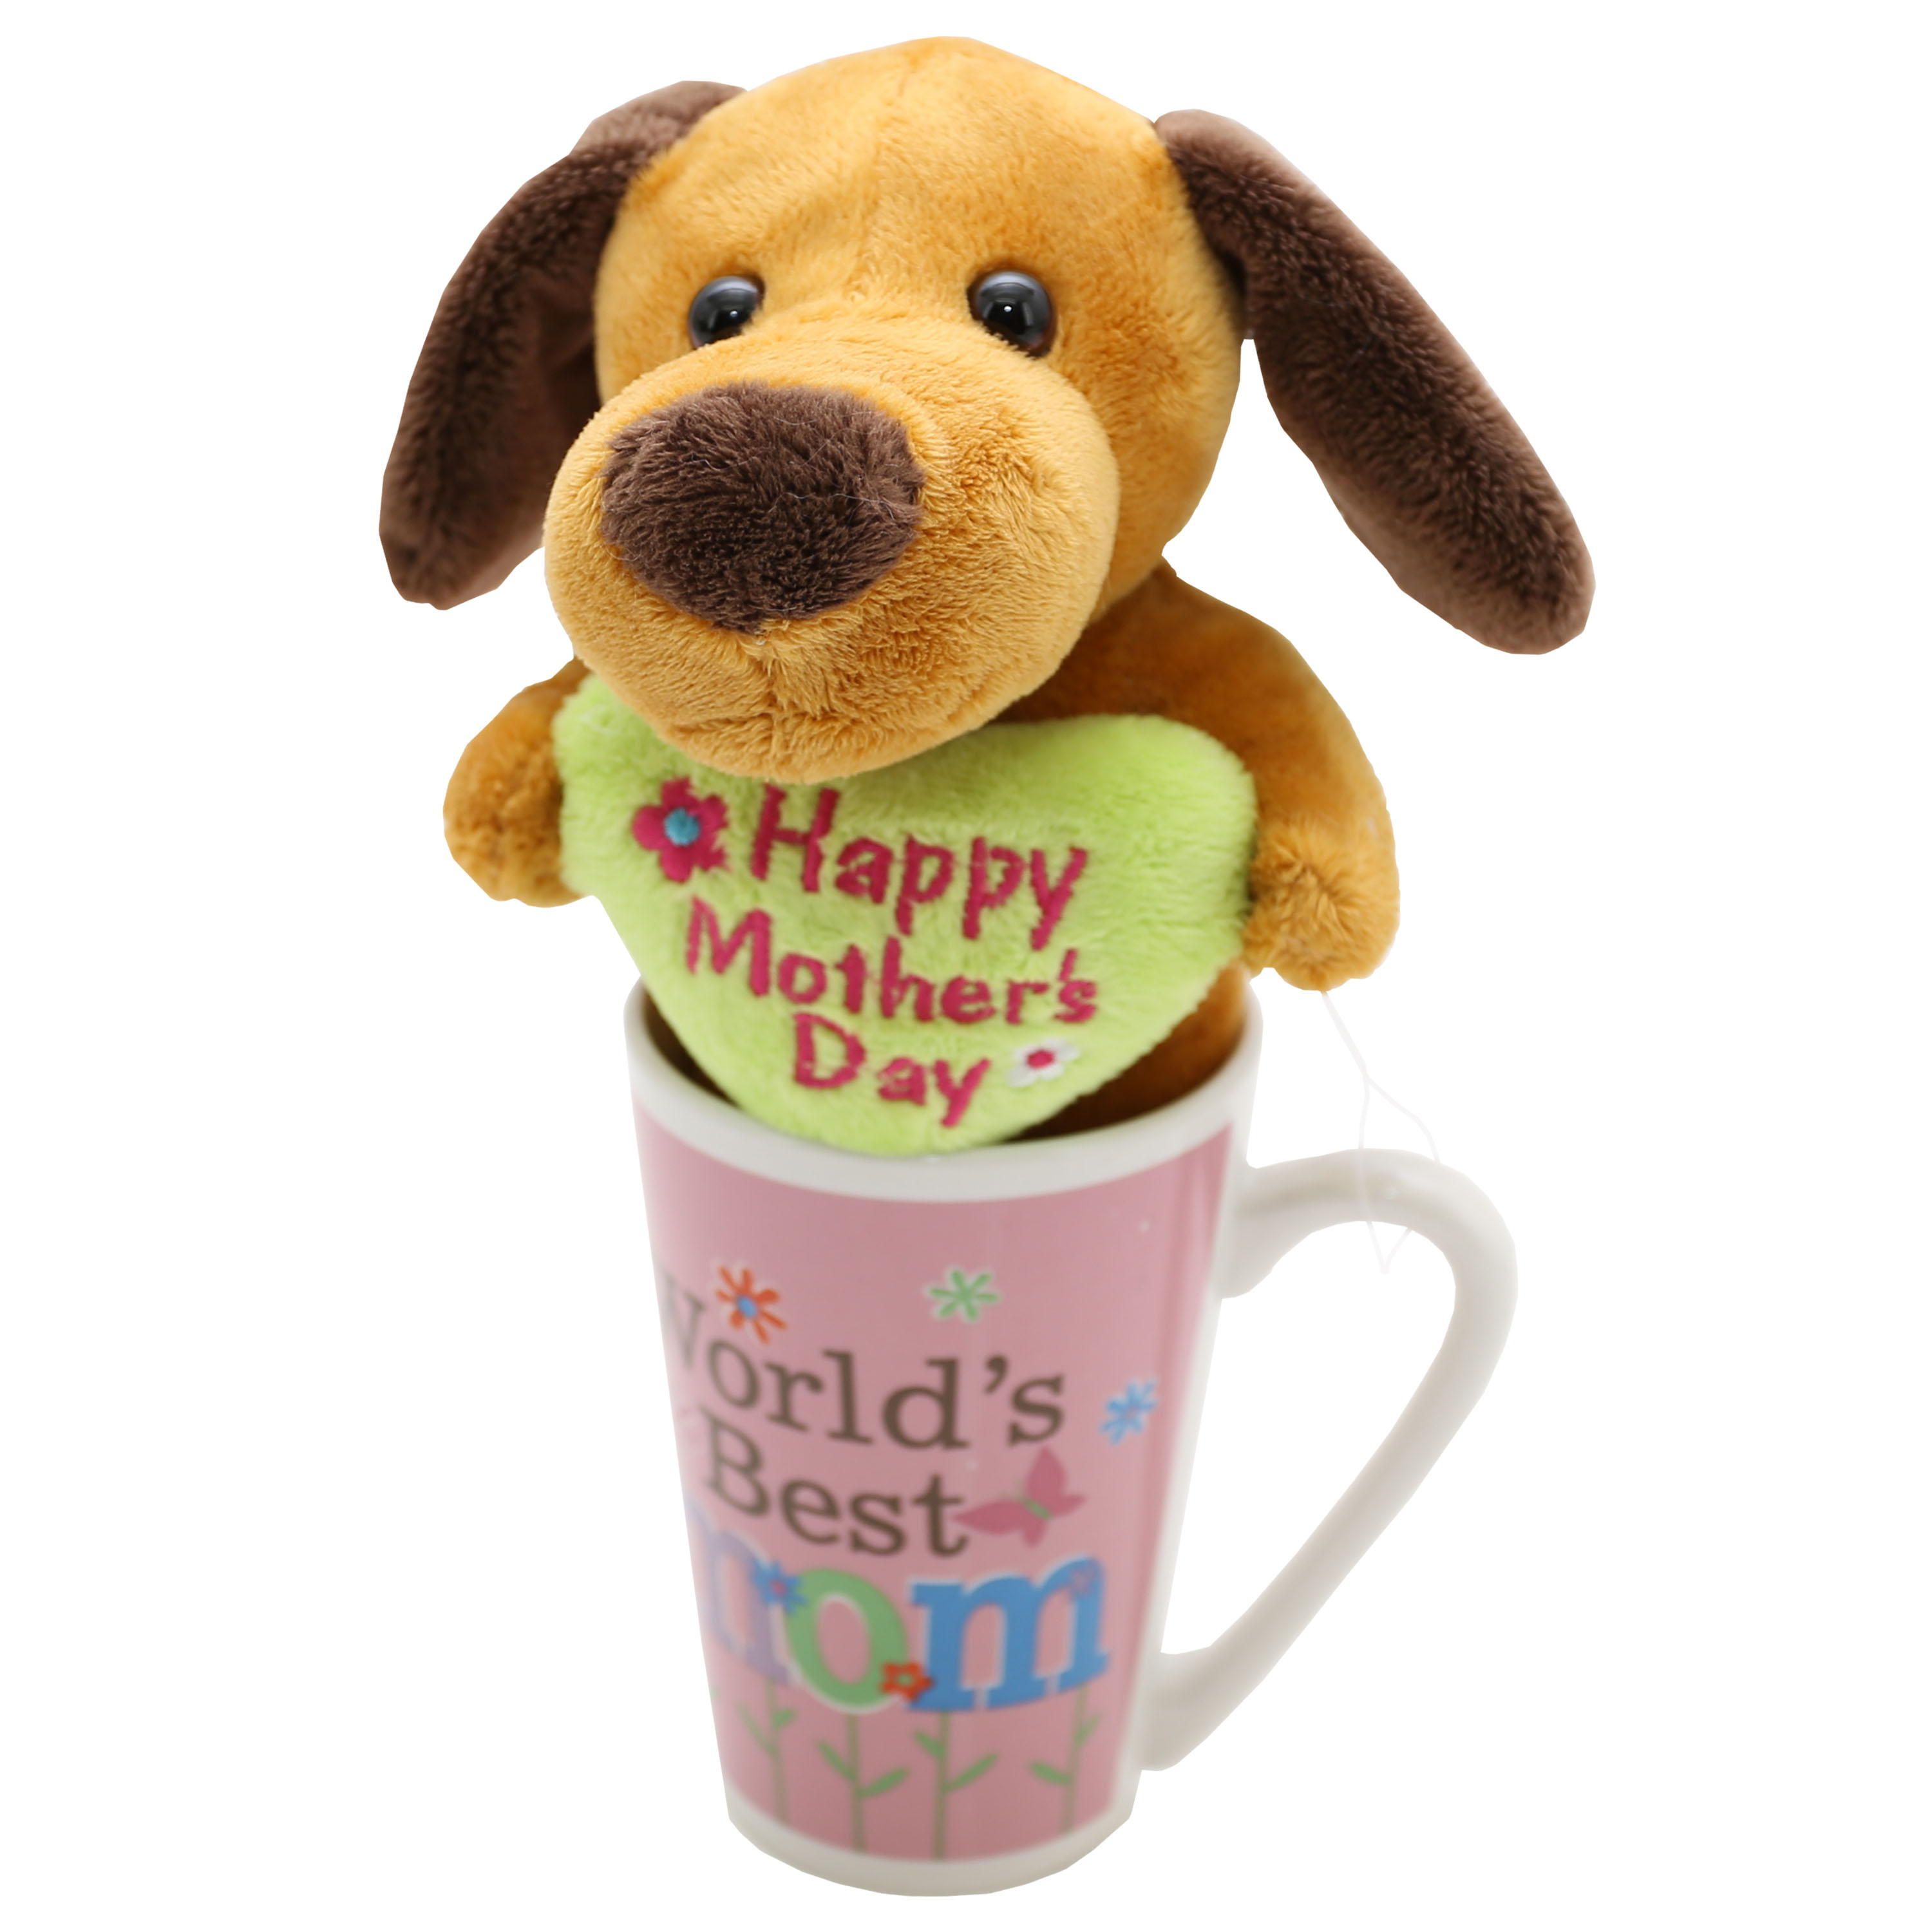 8-Inch Plush In Mug - Brown Puppy